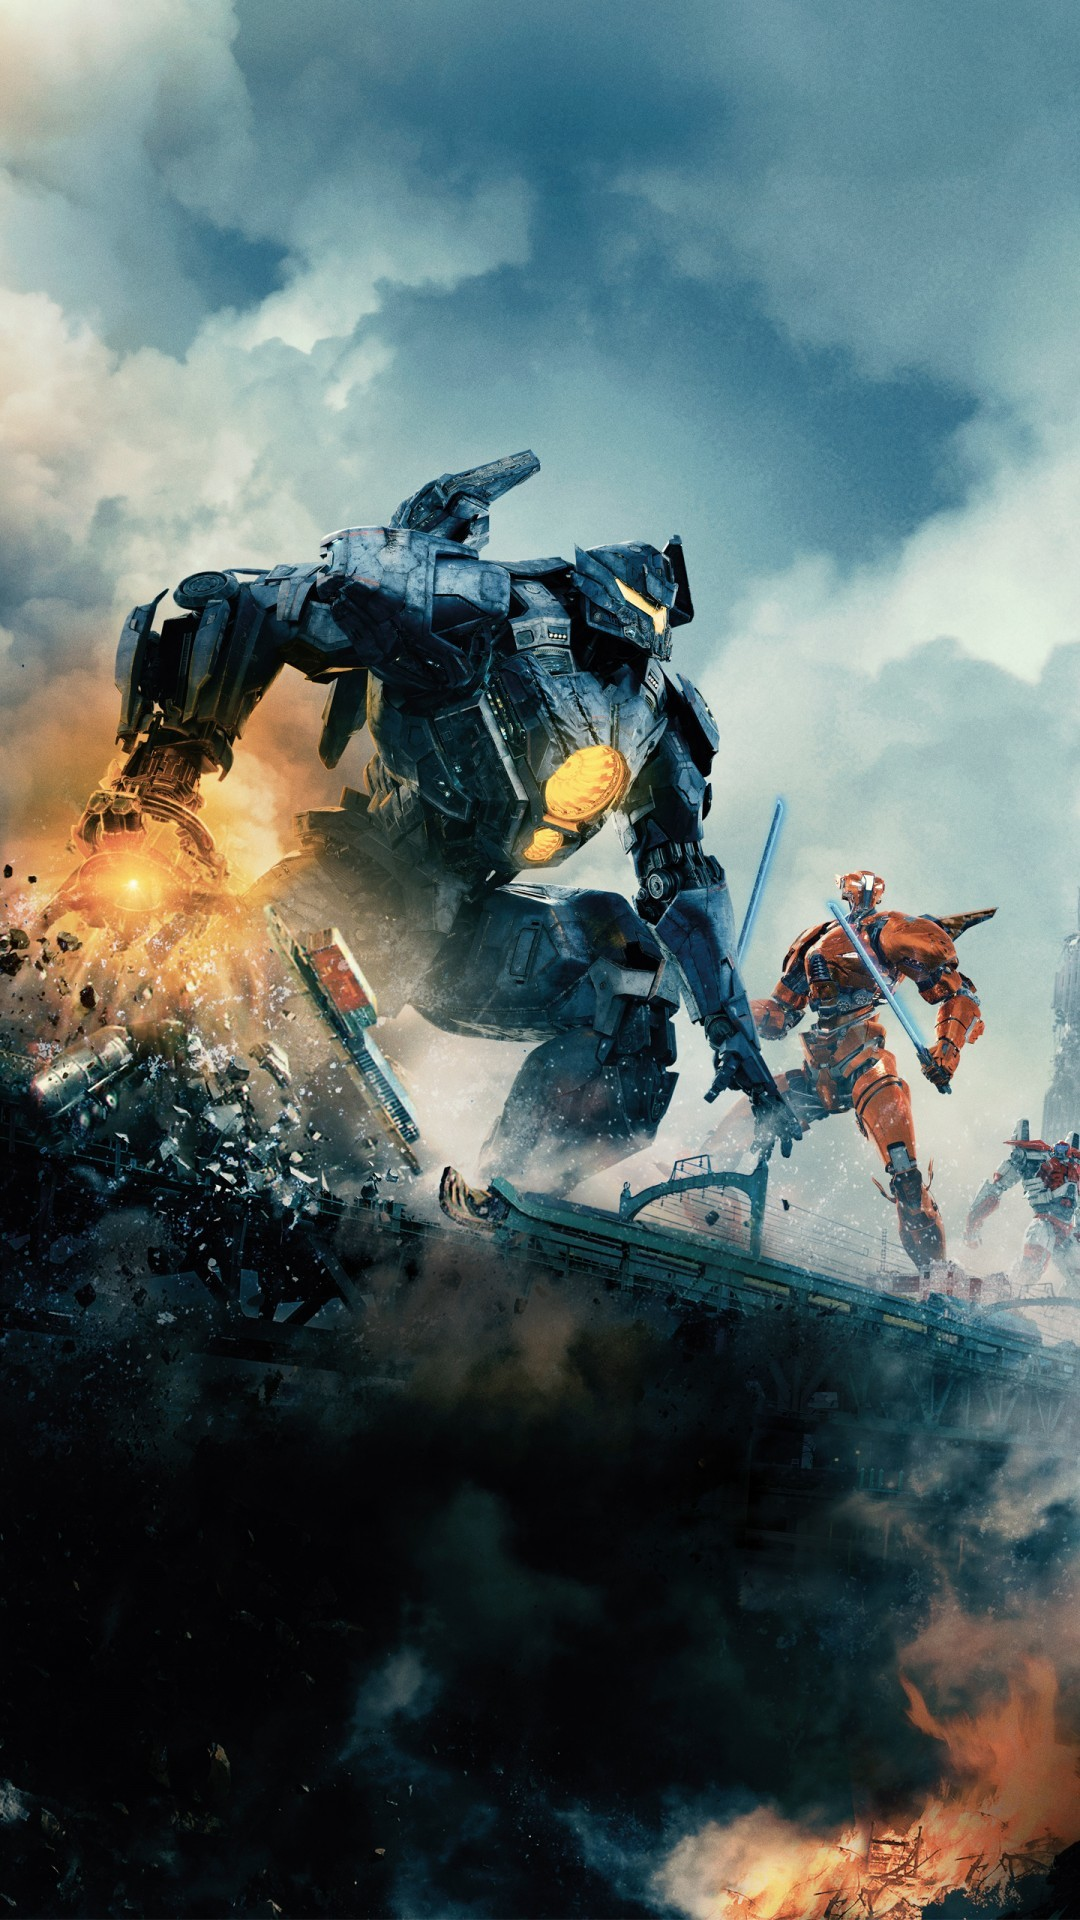 The new trailer for Pacific Rim Uprising puts John Boyega in the